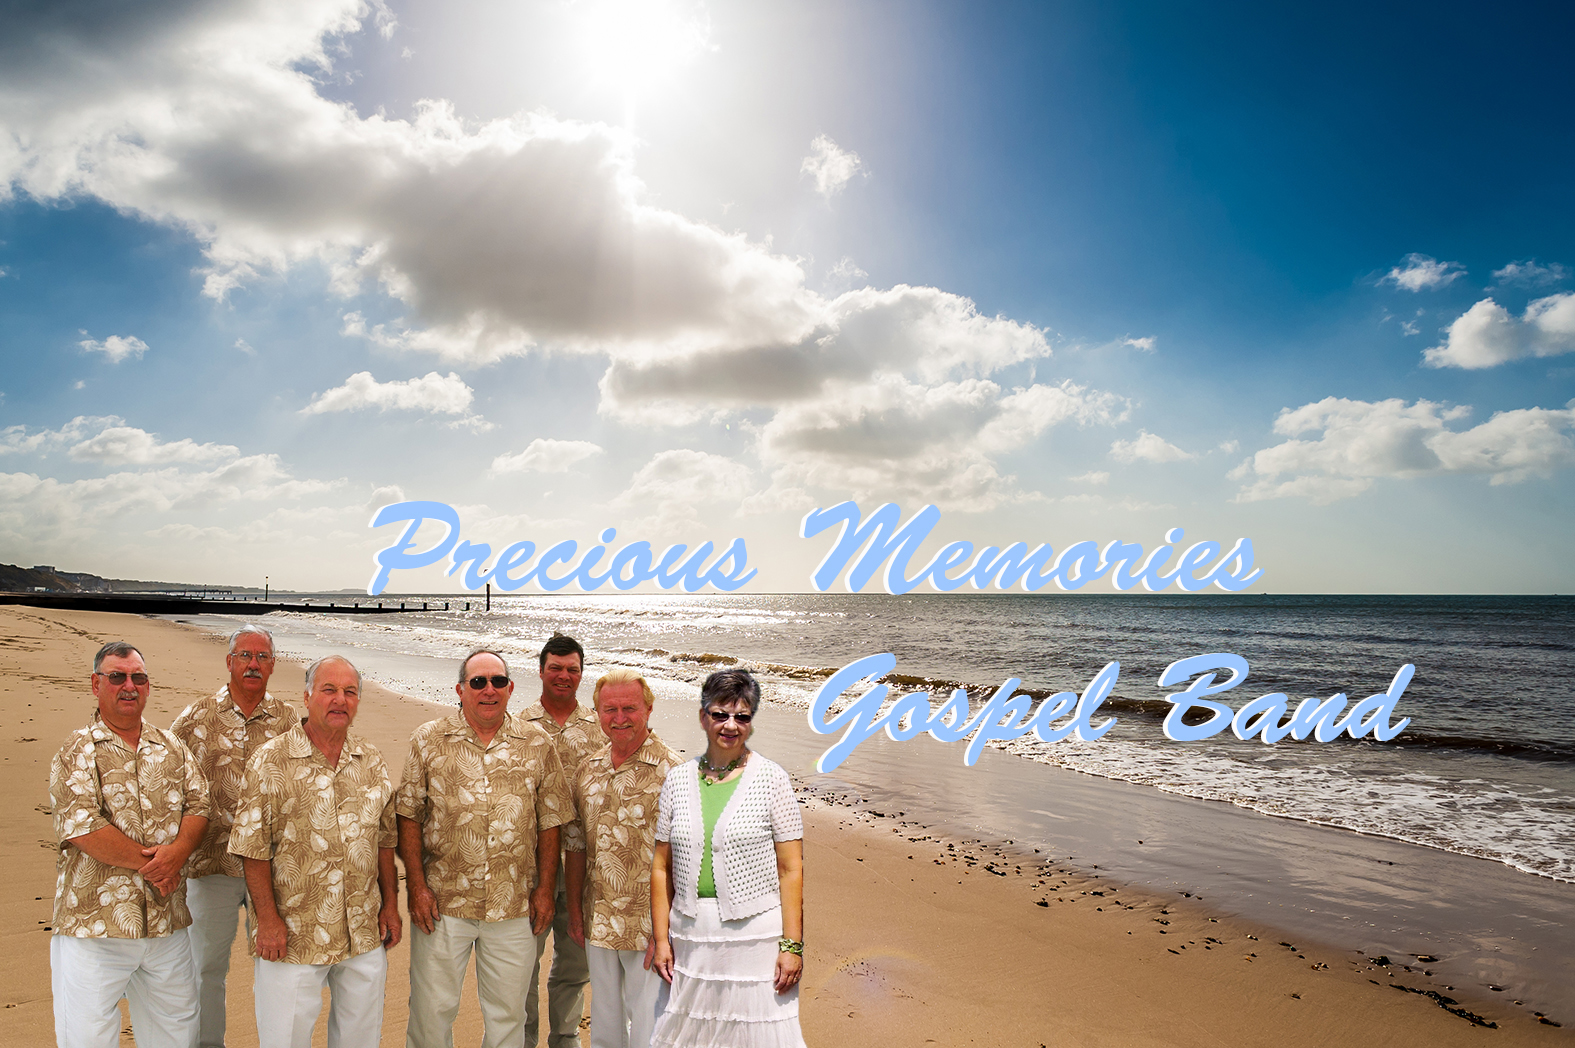 Precious Memories Gospel Band